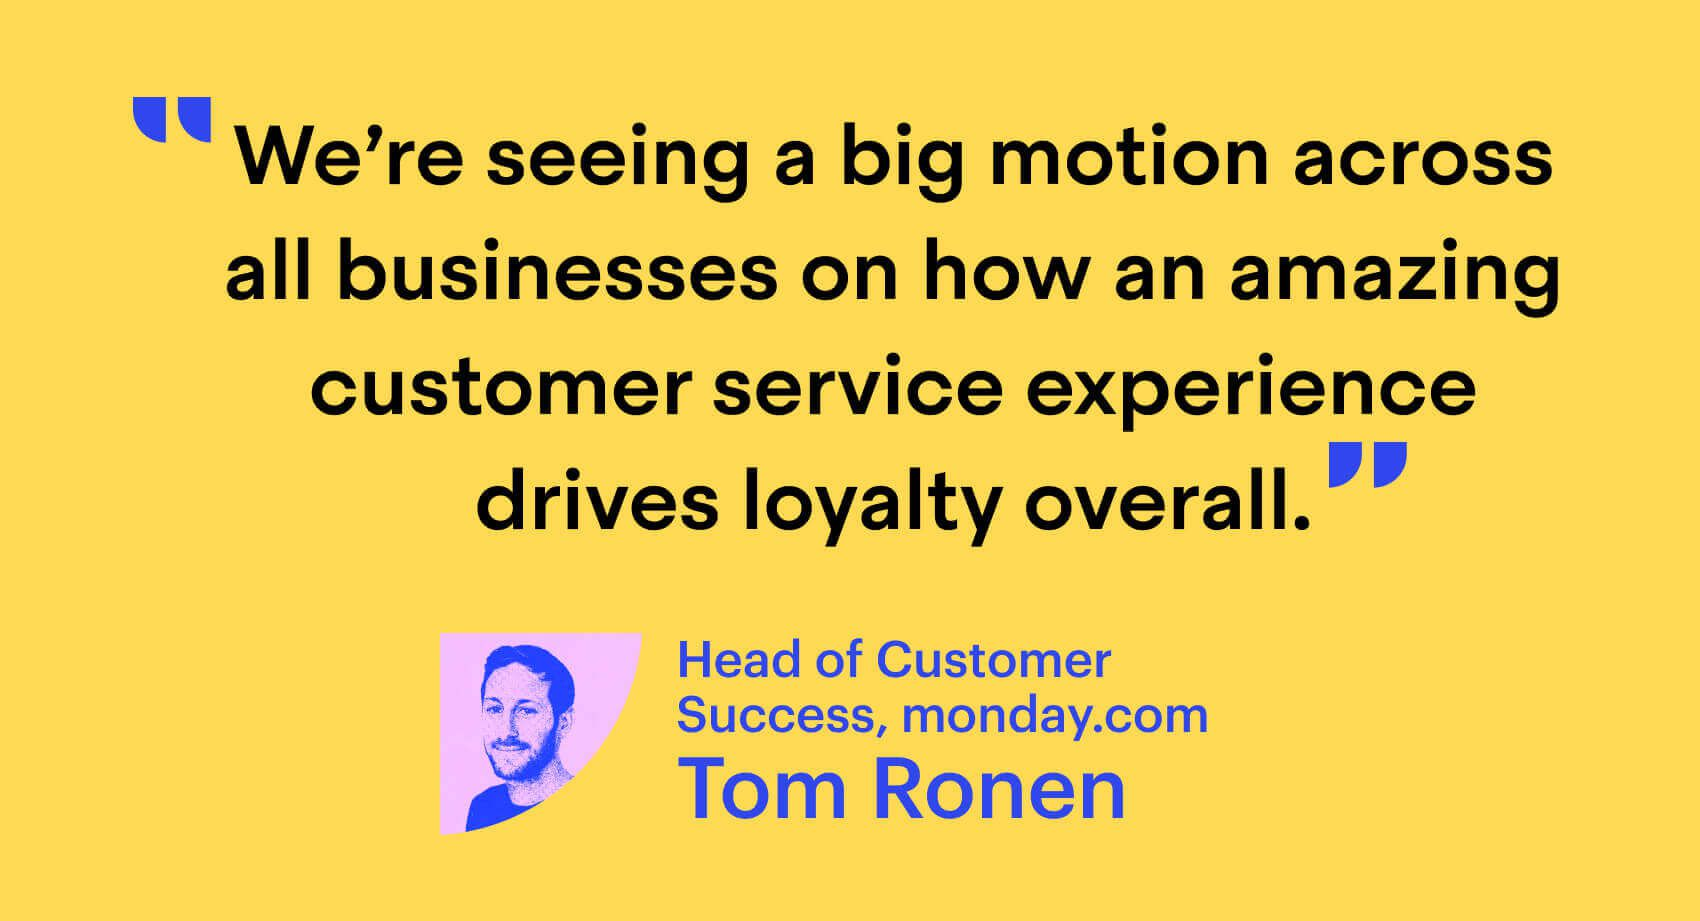 monday.com's Tom Ronen on customer loyalty